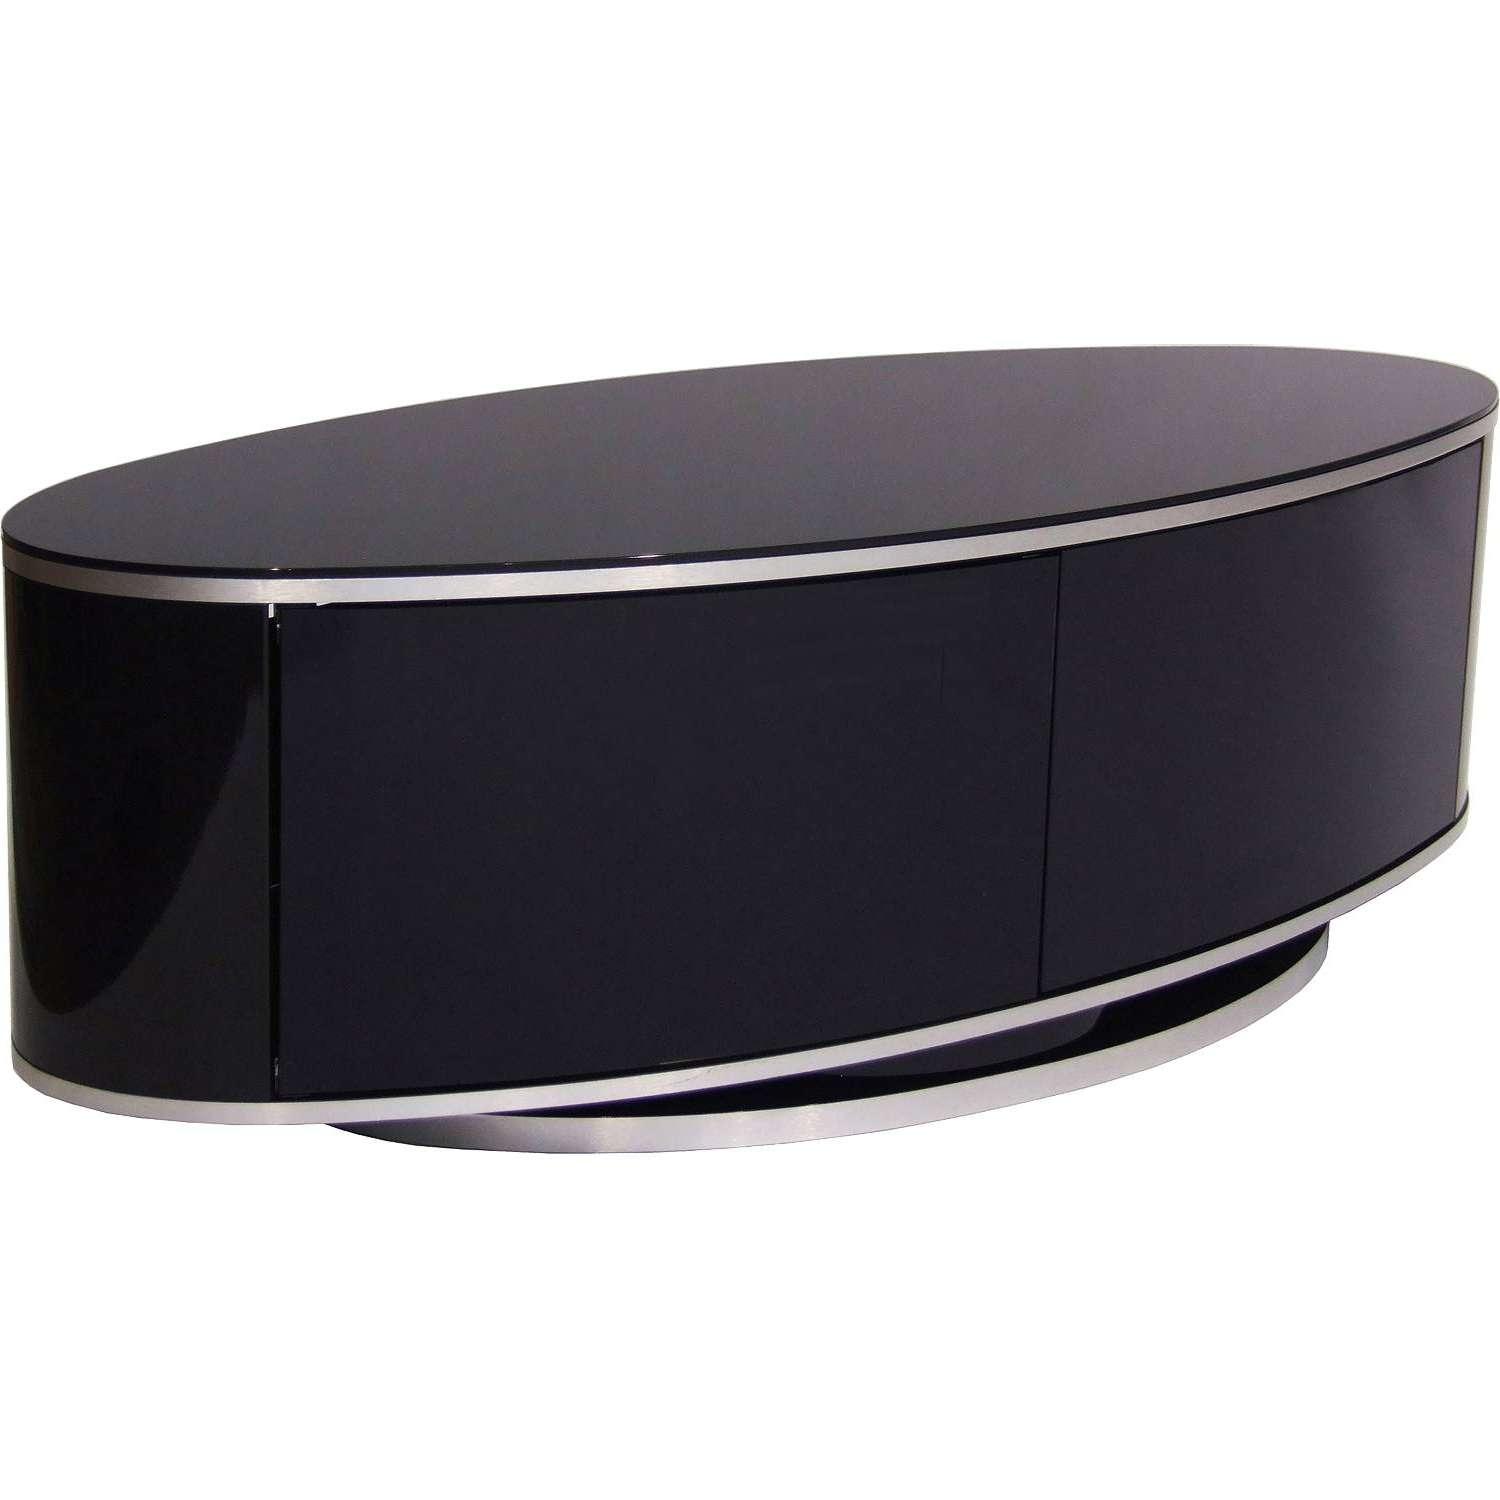 """Mda Designs Luna Av High Gloss Black Oval Tv Cabinet Up To 55"""" Tvs With White Gloss Oval Tv Stands (View 7 of 15)"""